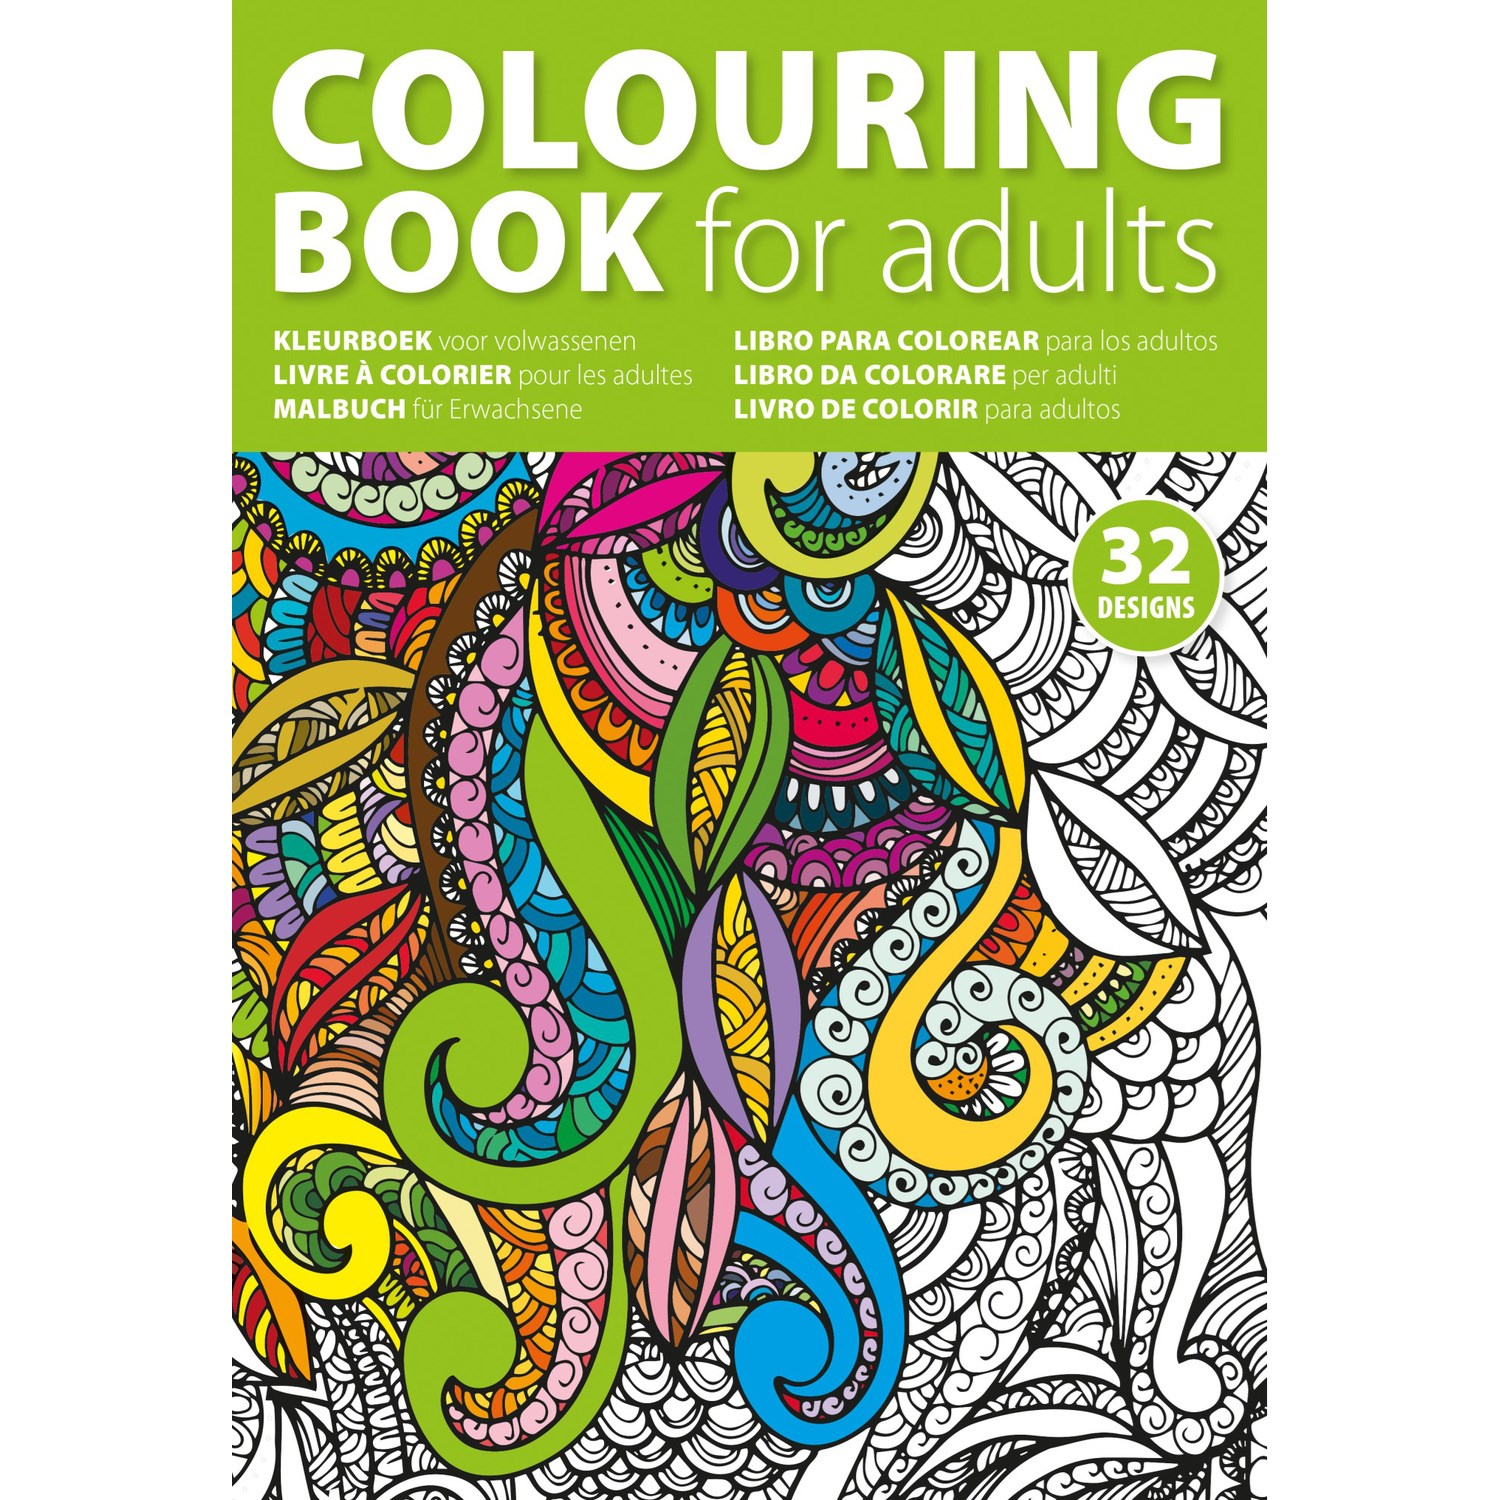 Coloring-book-1 20 Unexpected and Creative Gift Ideas for Best Friends